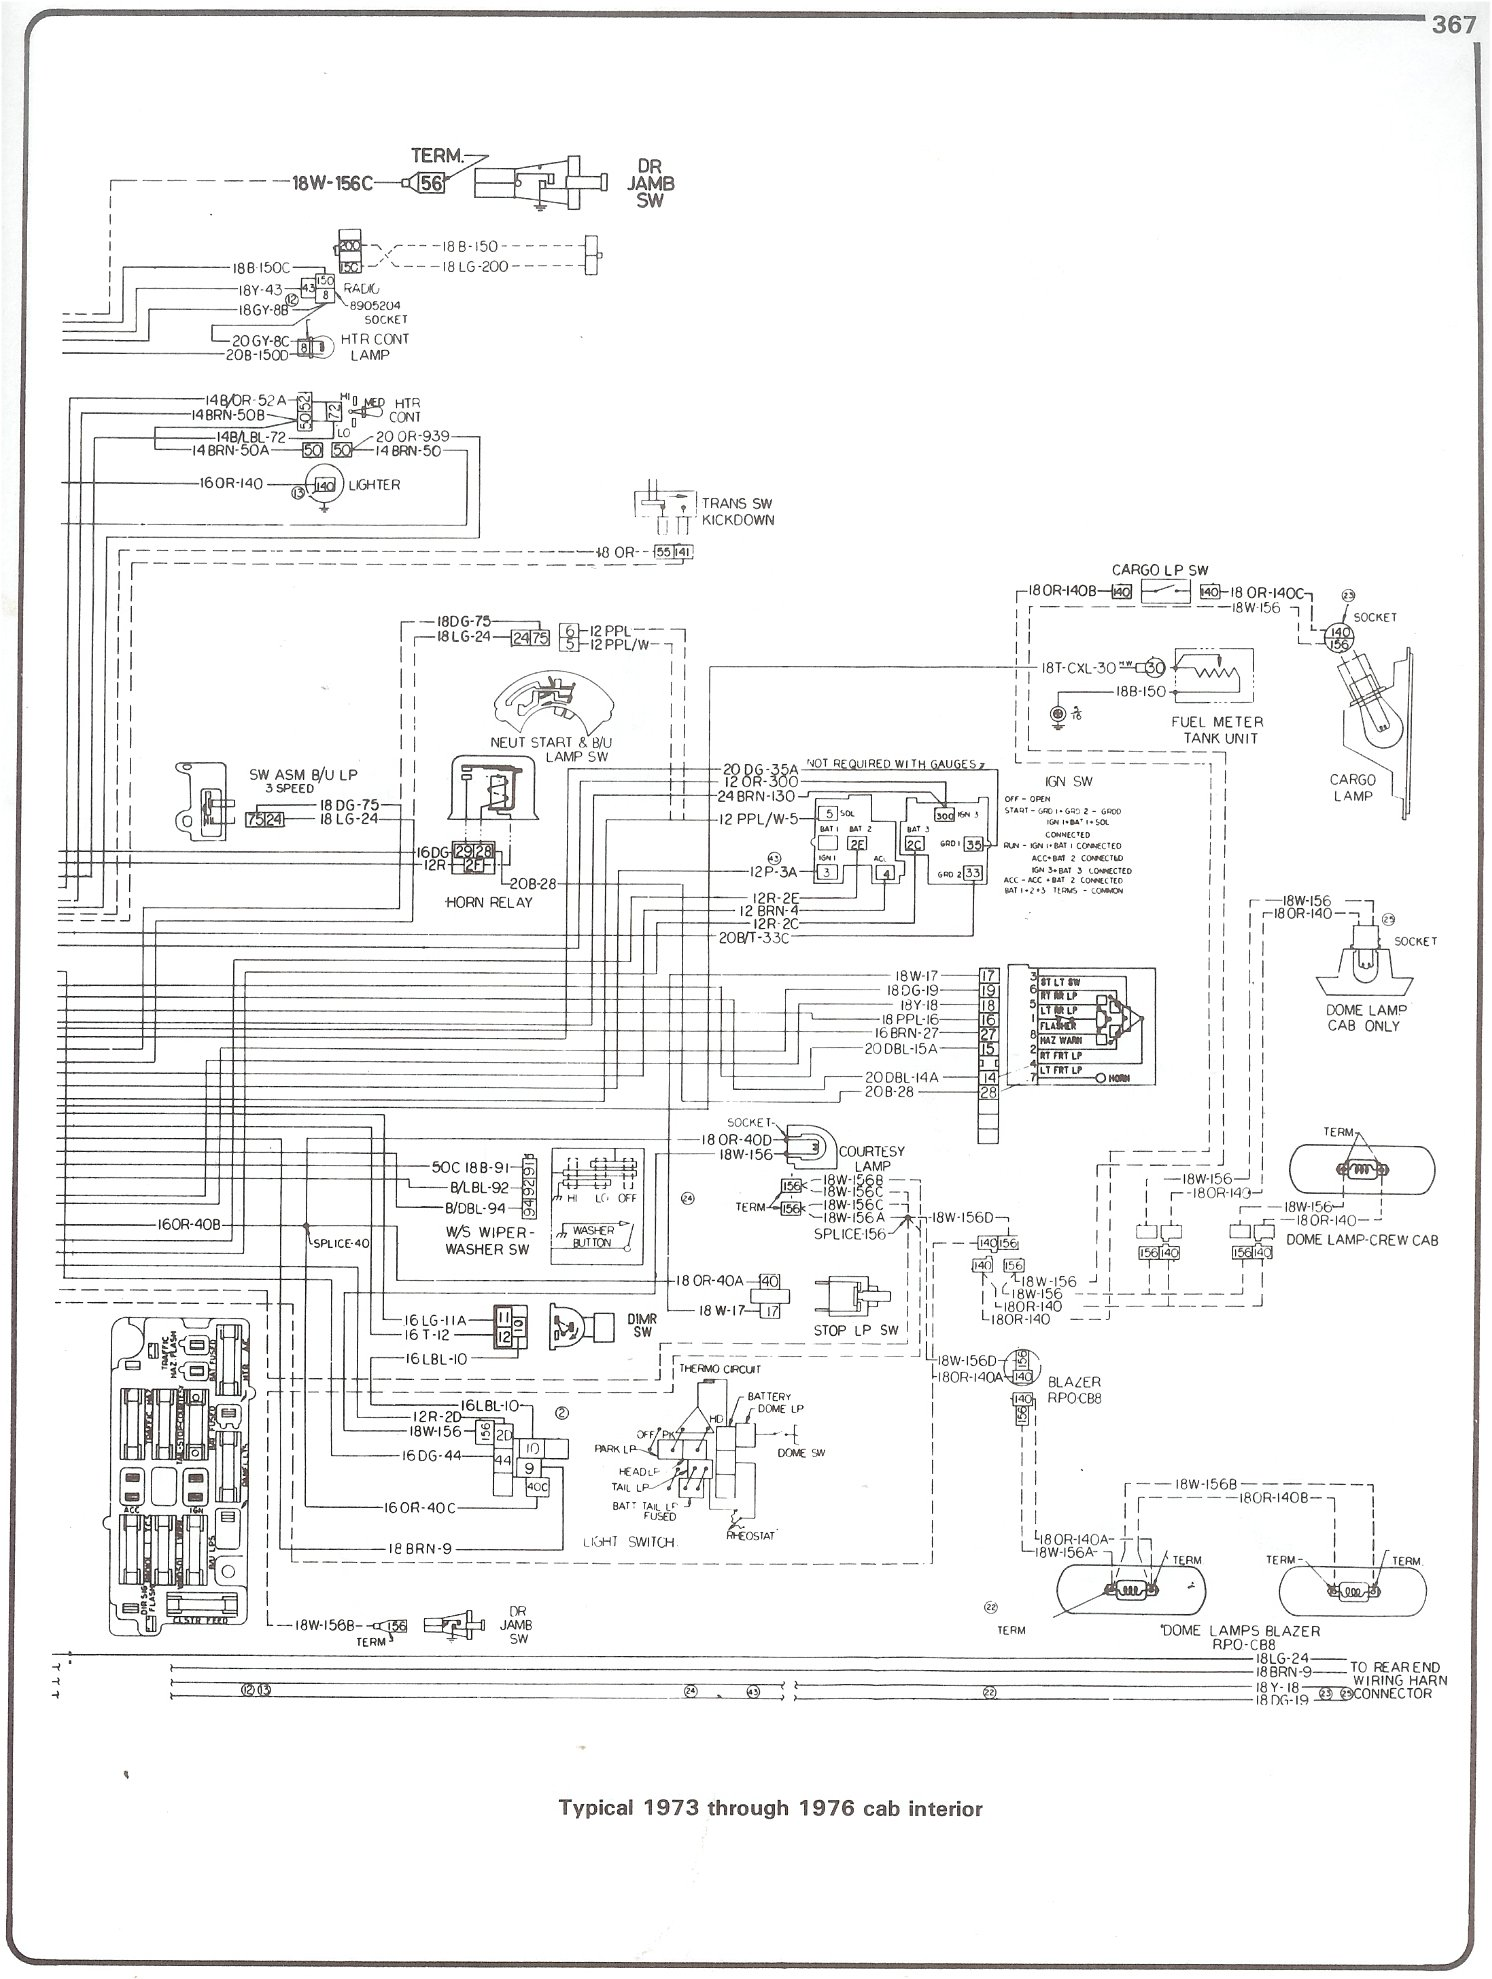 73 76_cab_inter complete 73 87 wiring diagrams chevy truck instrument cluster wiring diagram at mifinder.co